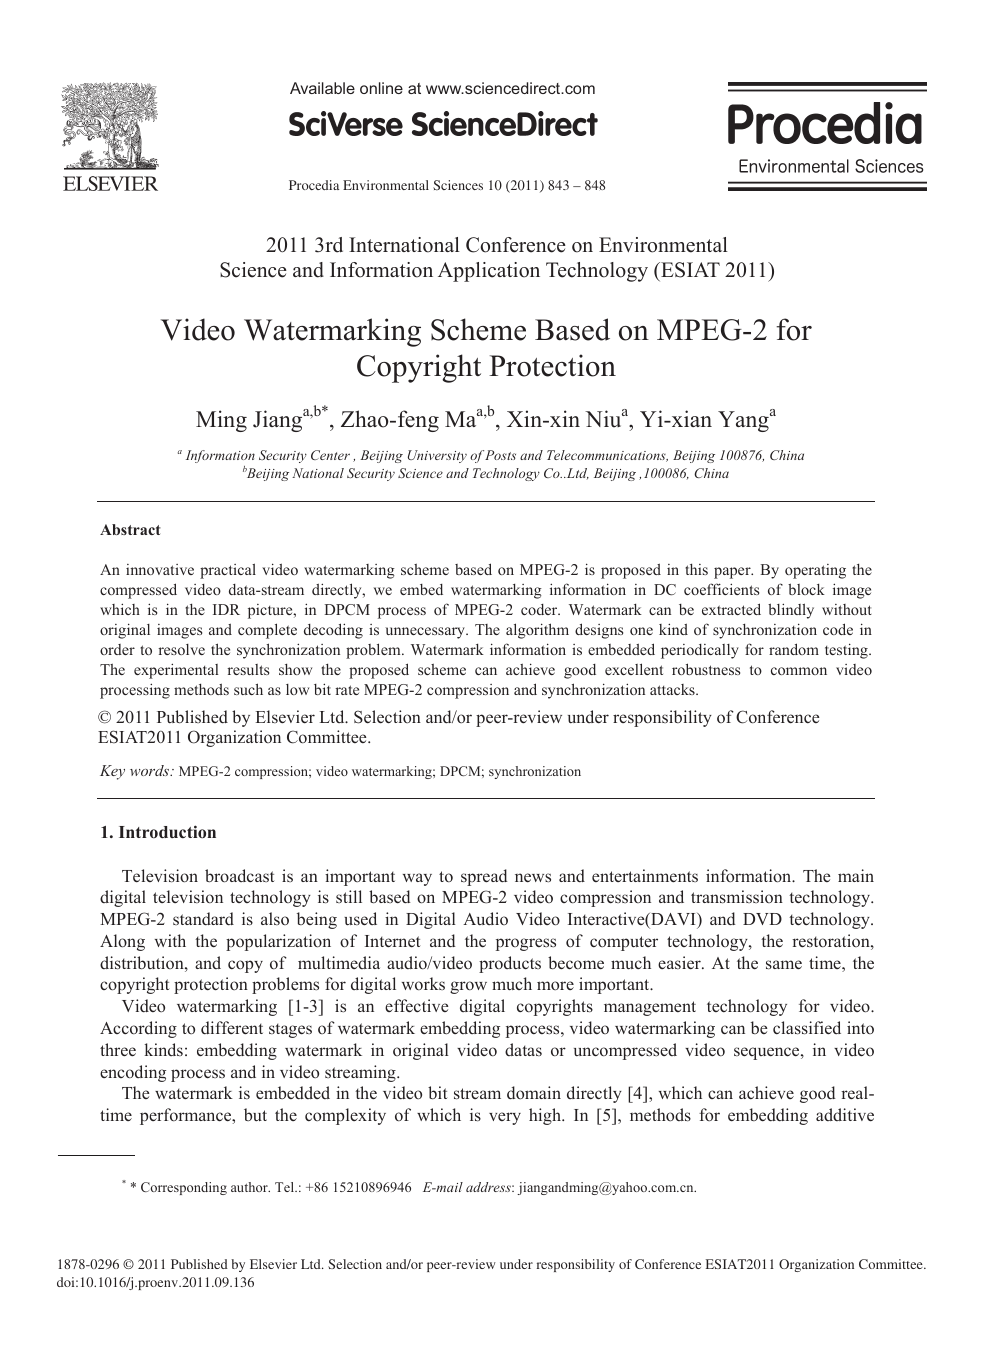 Video Watermarking Scheme Based on MPEG-2 for Copyright